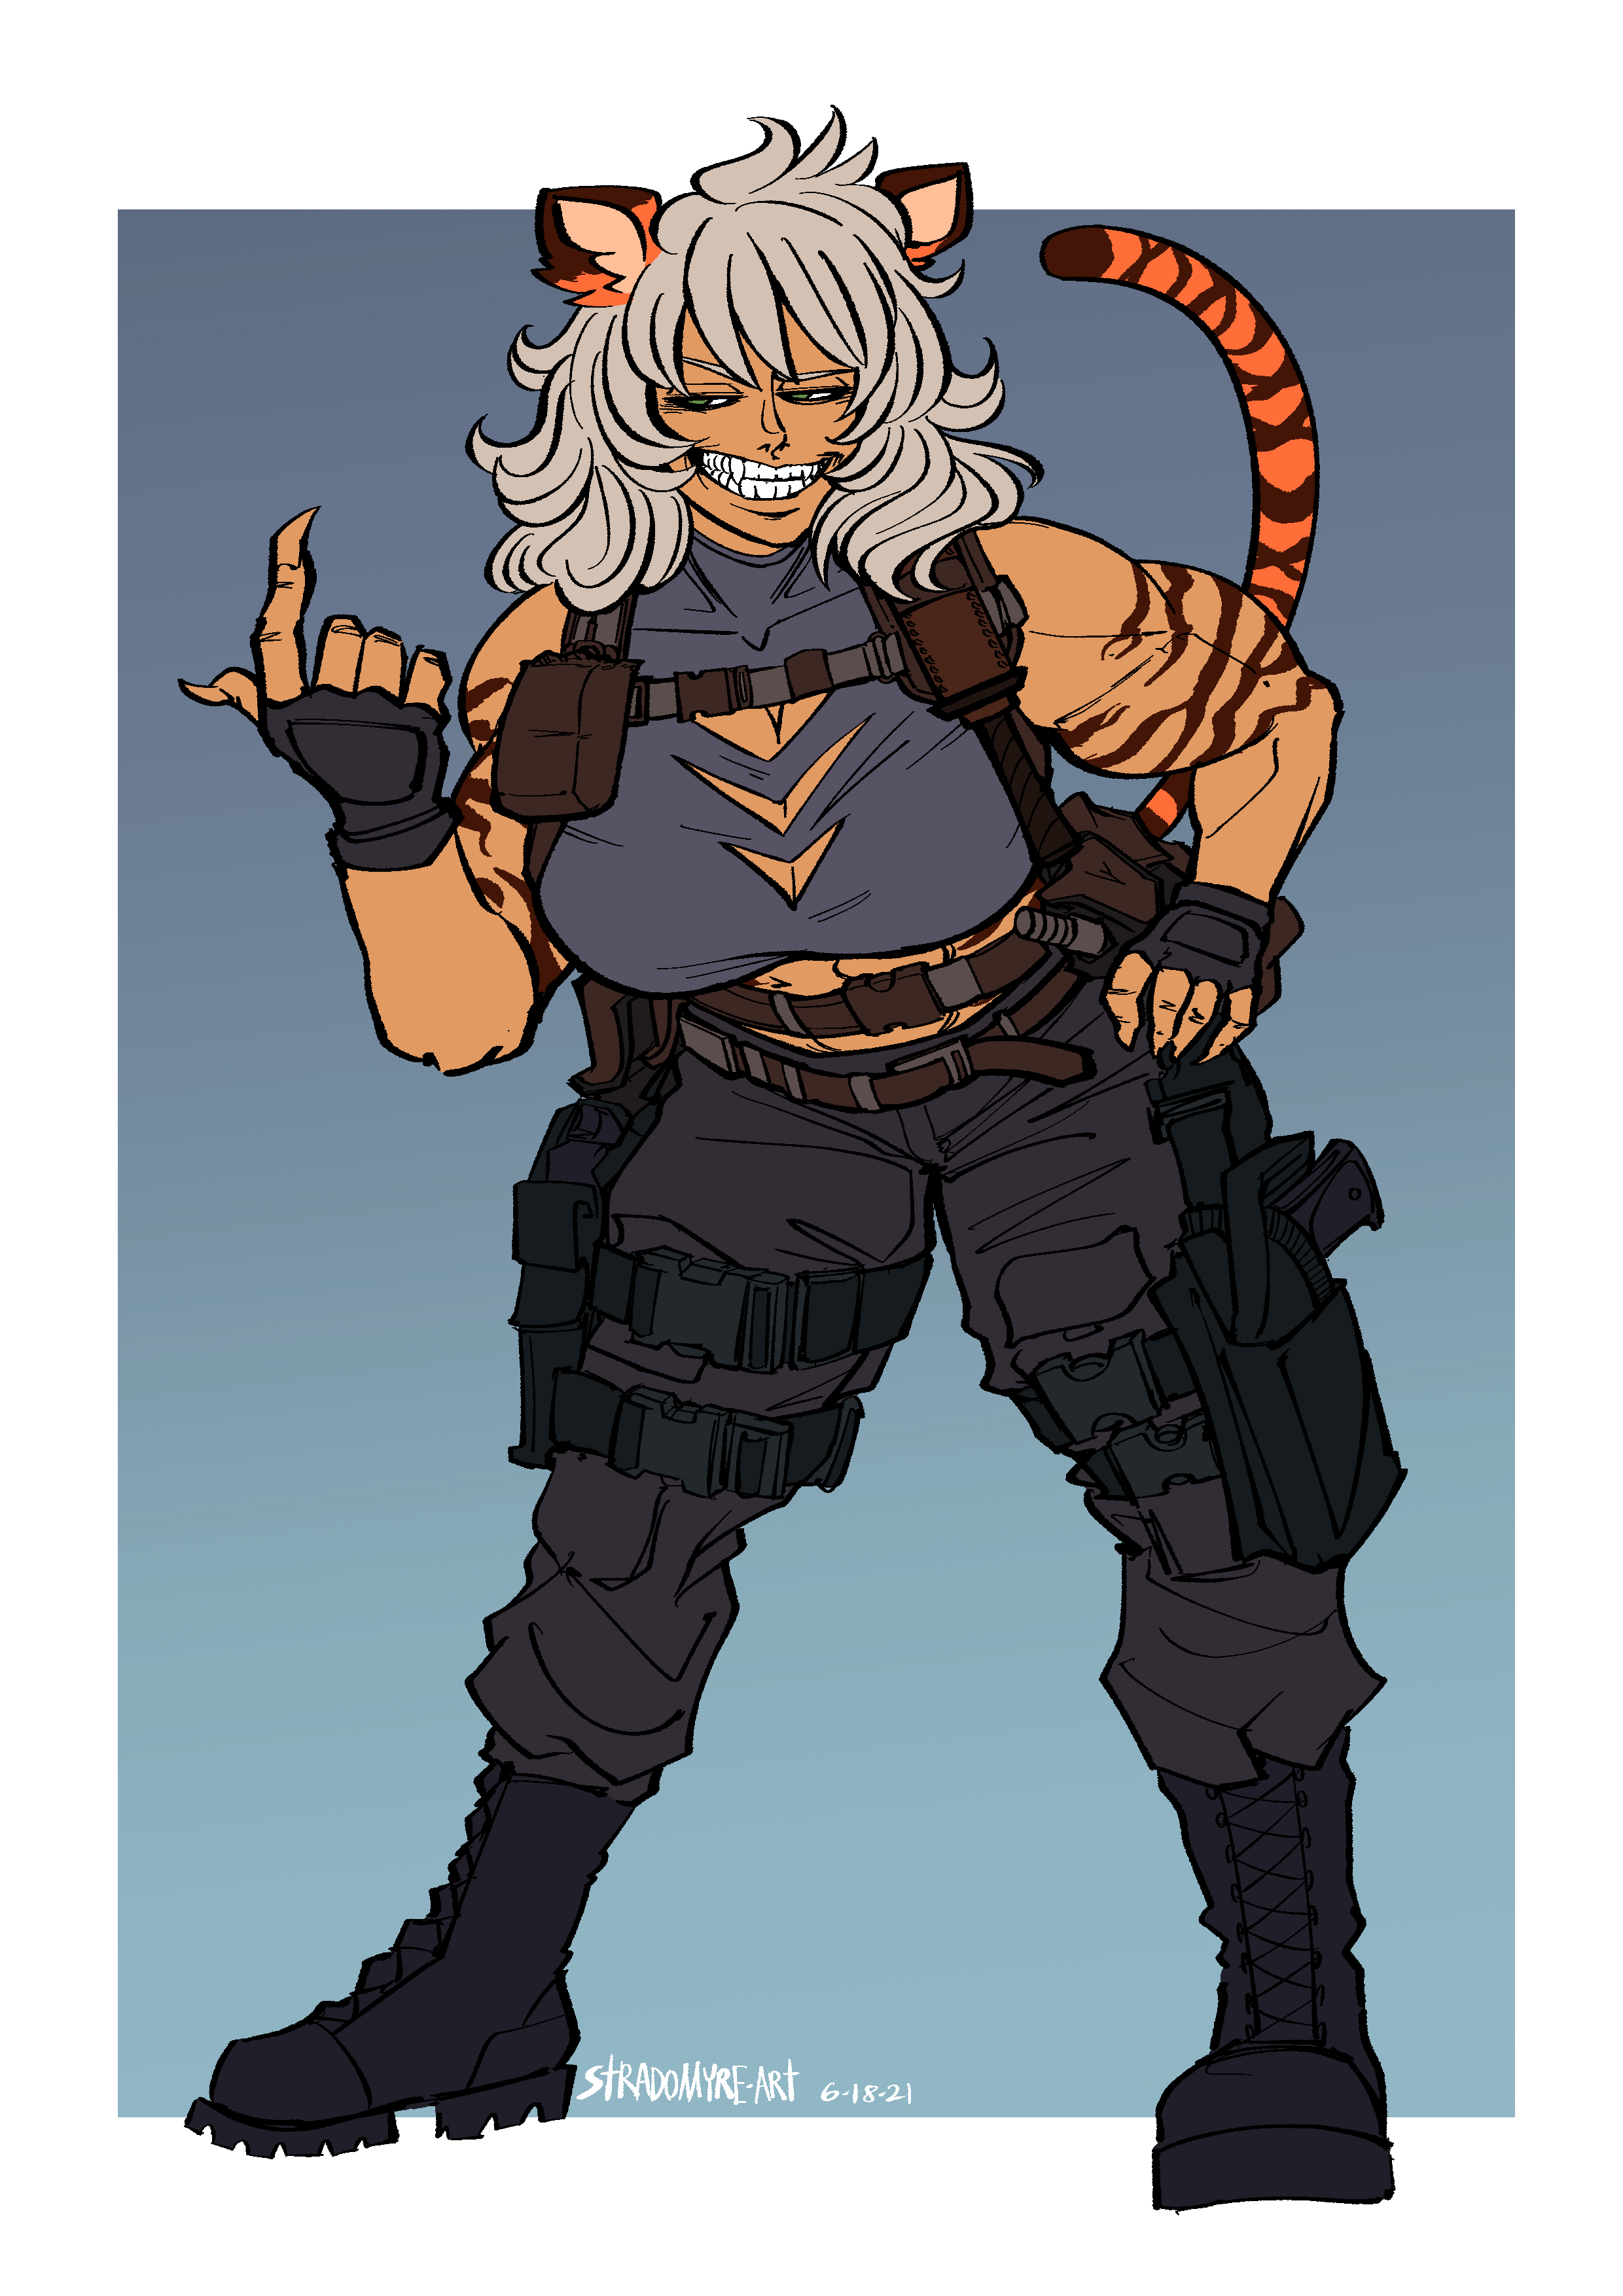 COMMISSION - Tactical Tiger